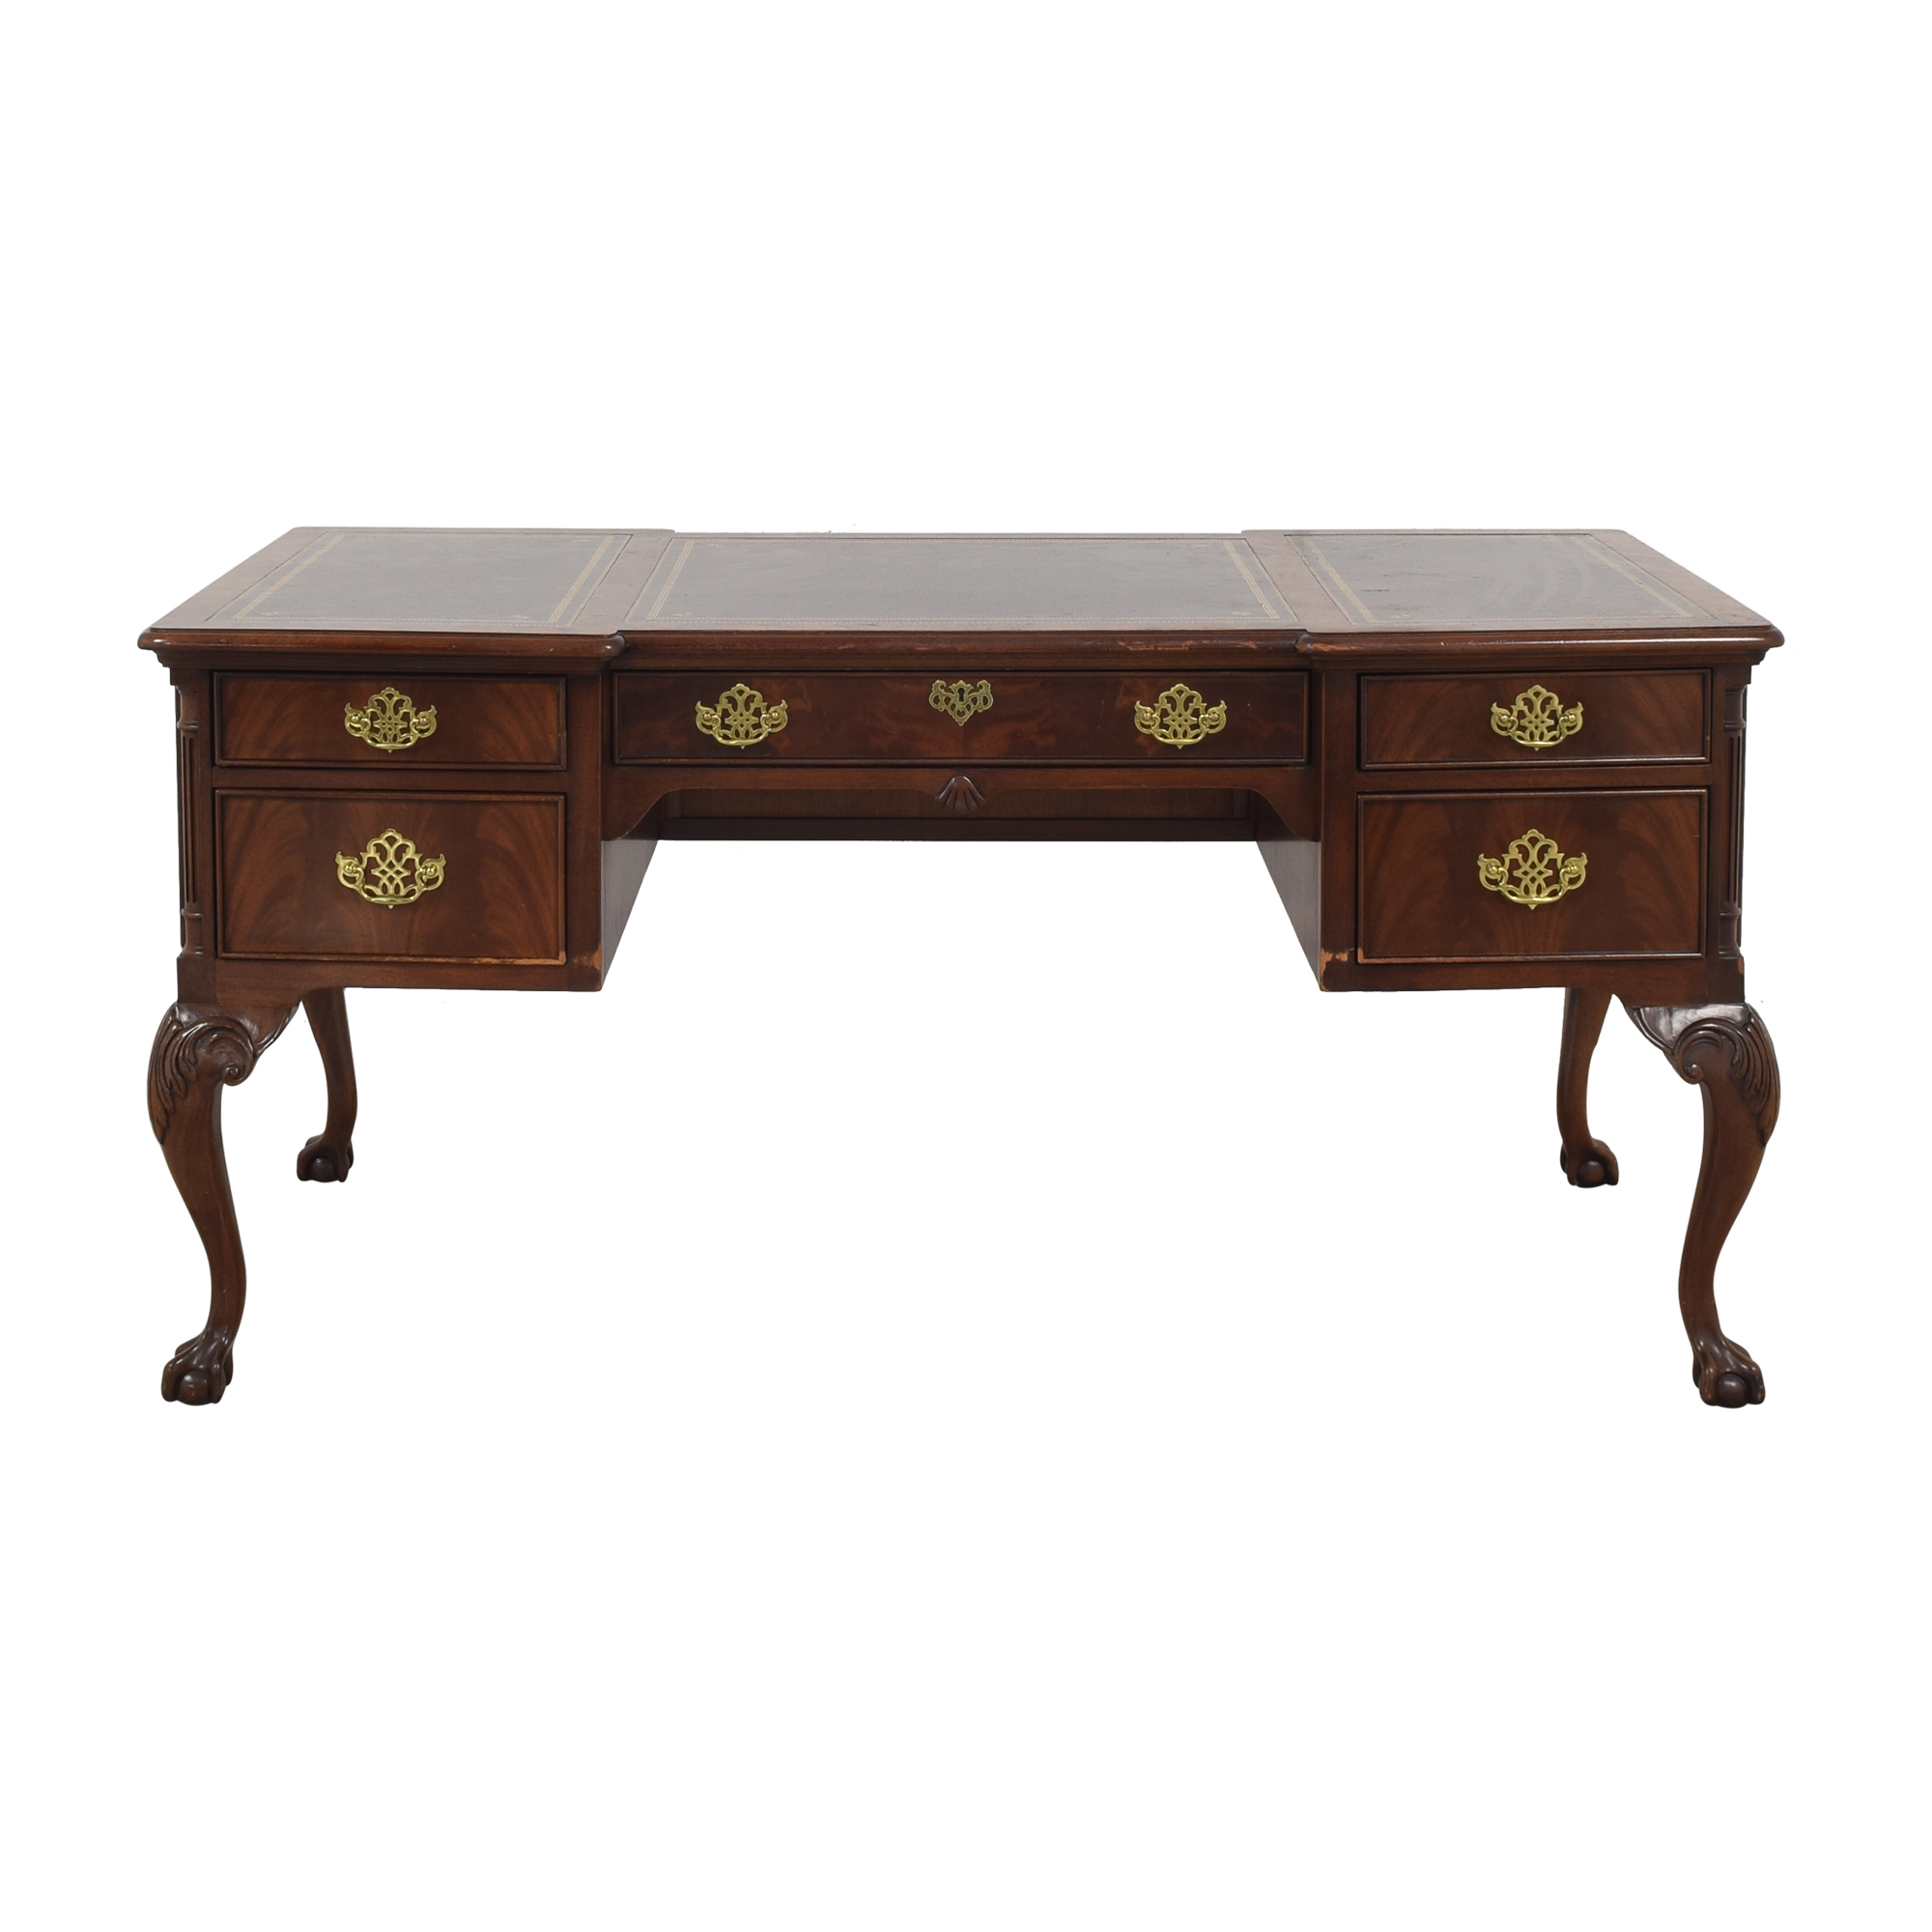 Sligh Centennial Edition Desk with Keys / Tables